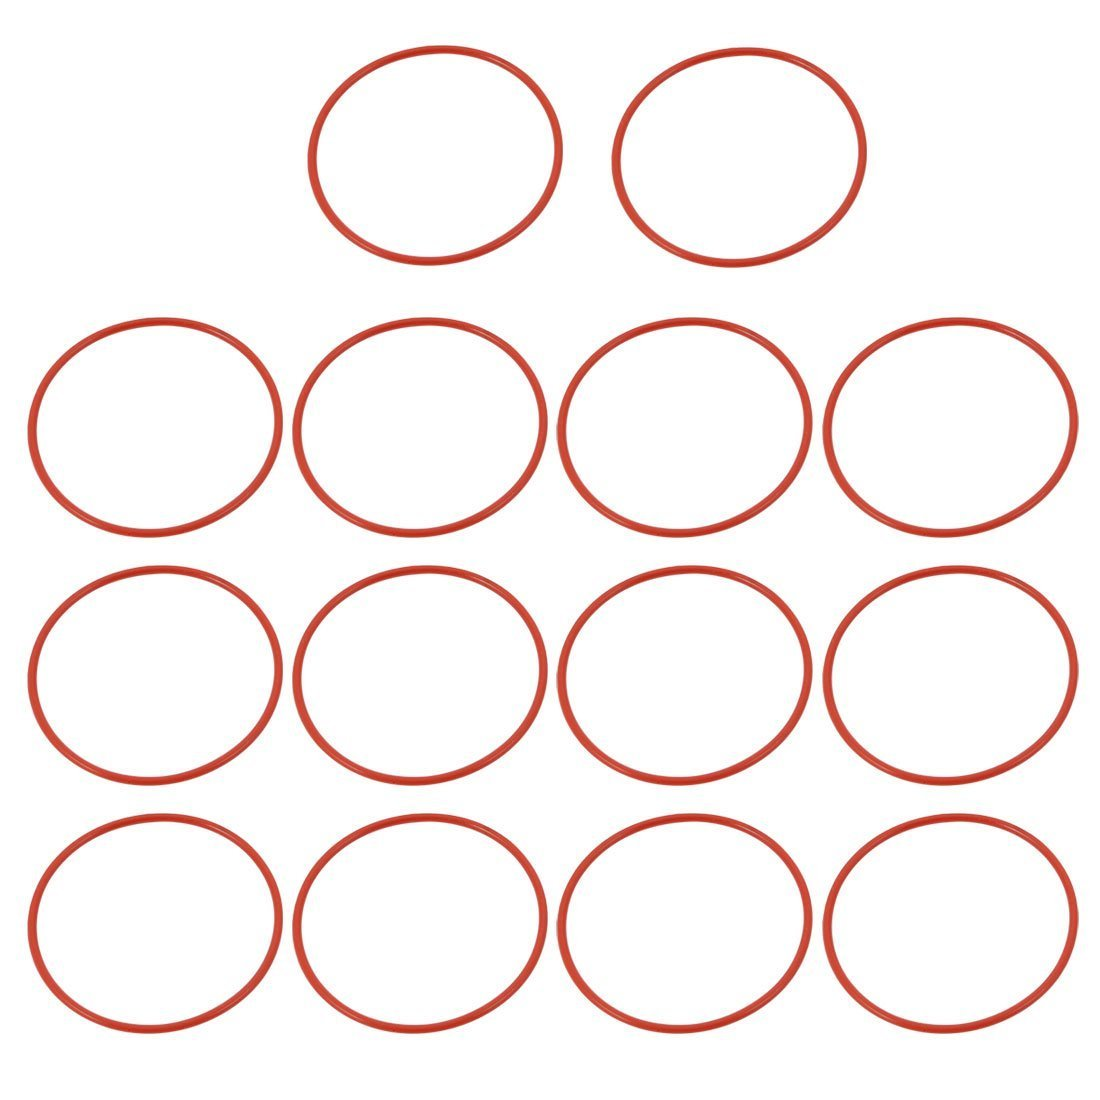 Portal Cool 14pcs Red 43mm Outer Dia 1.5mm Thickness Sealing Ring O-Shape Rubber Grommet